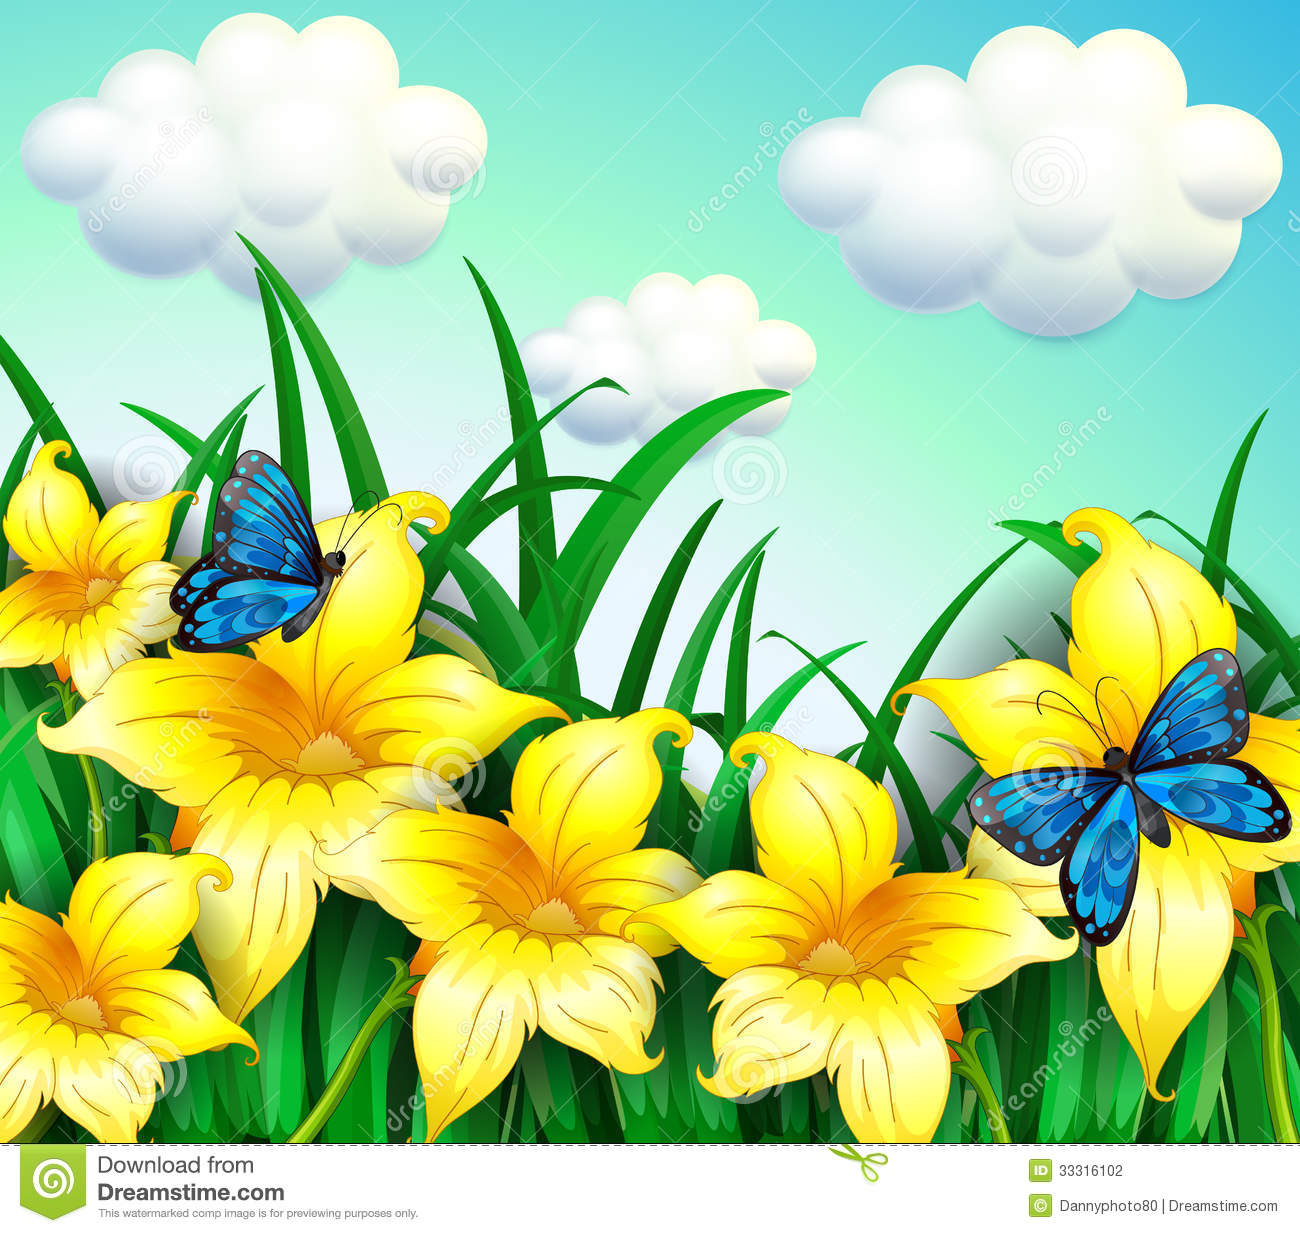 jardim rosas amarelas:Blue and Yellow Flower with Butterflies Images